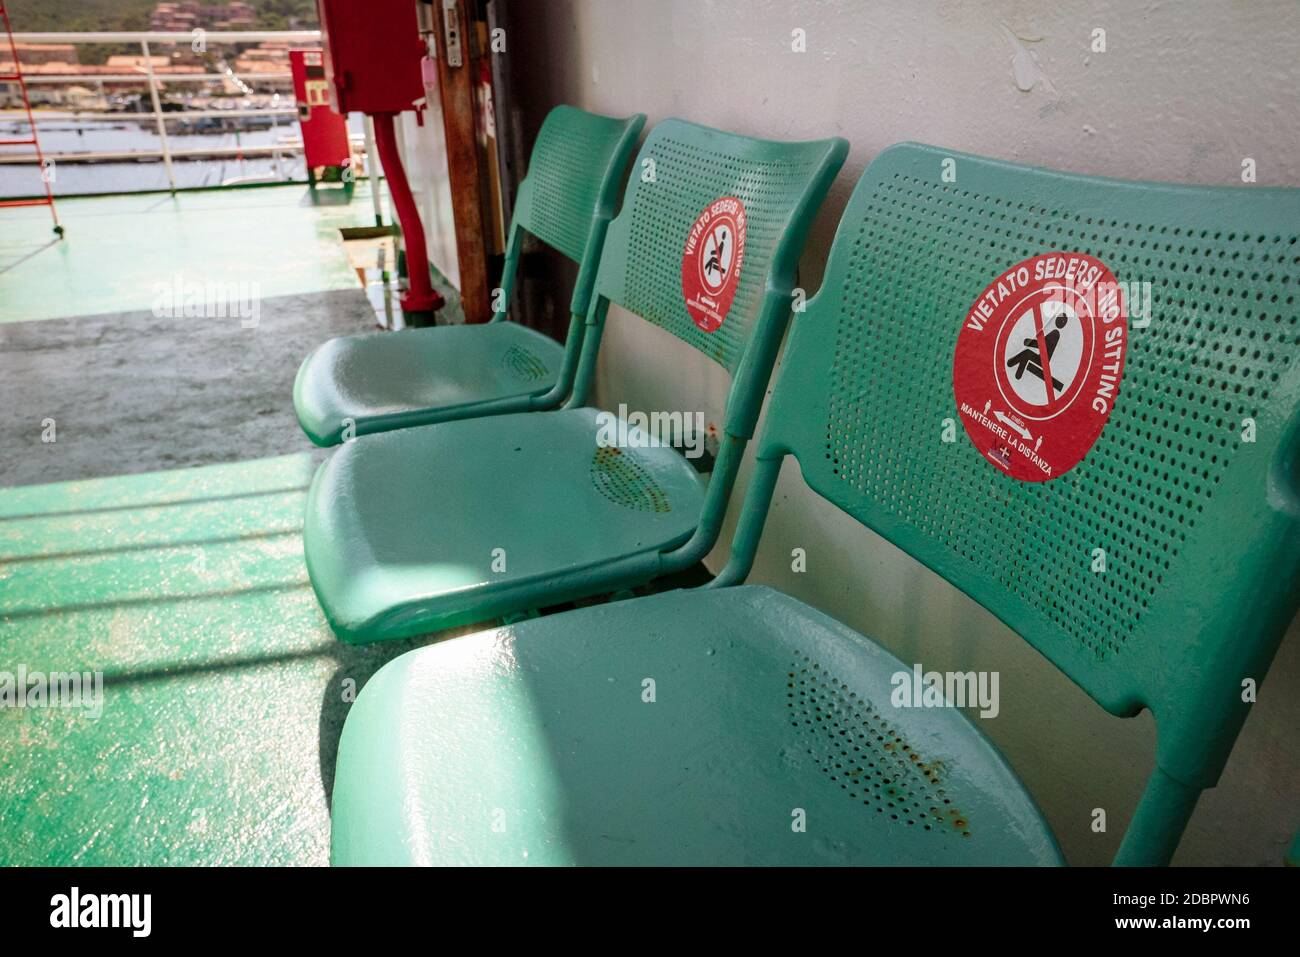 Space markers on a passenger ship to ensure social distancing during the coronavirus crisis in Olbia, Sardinia, Italy. Stock Photo